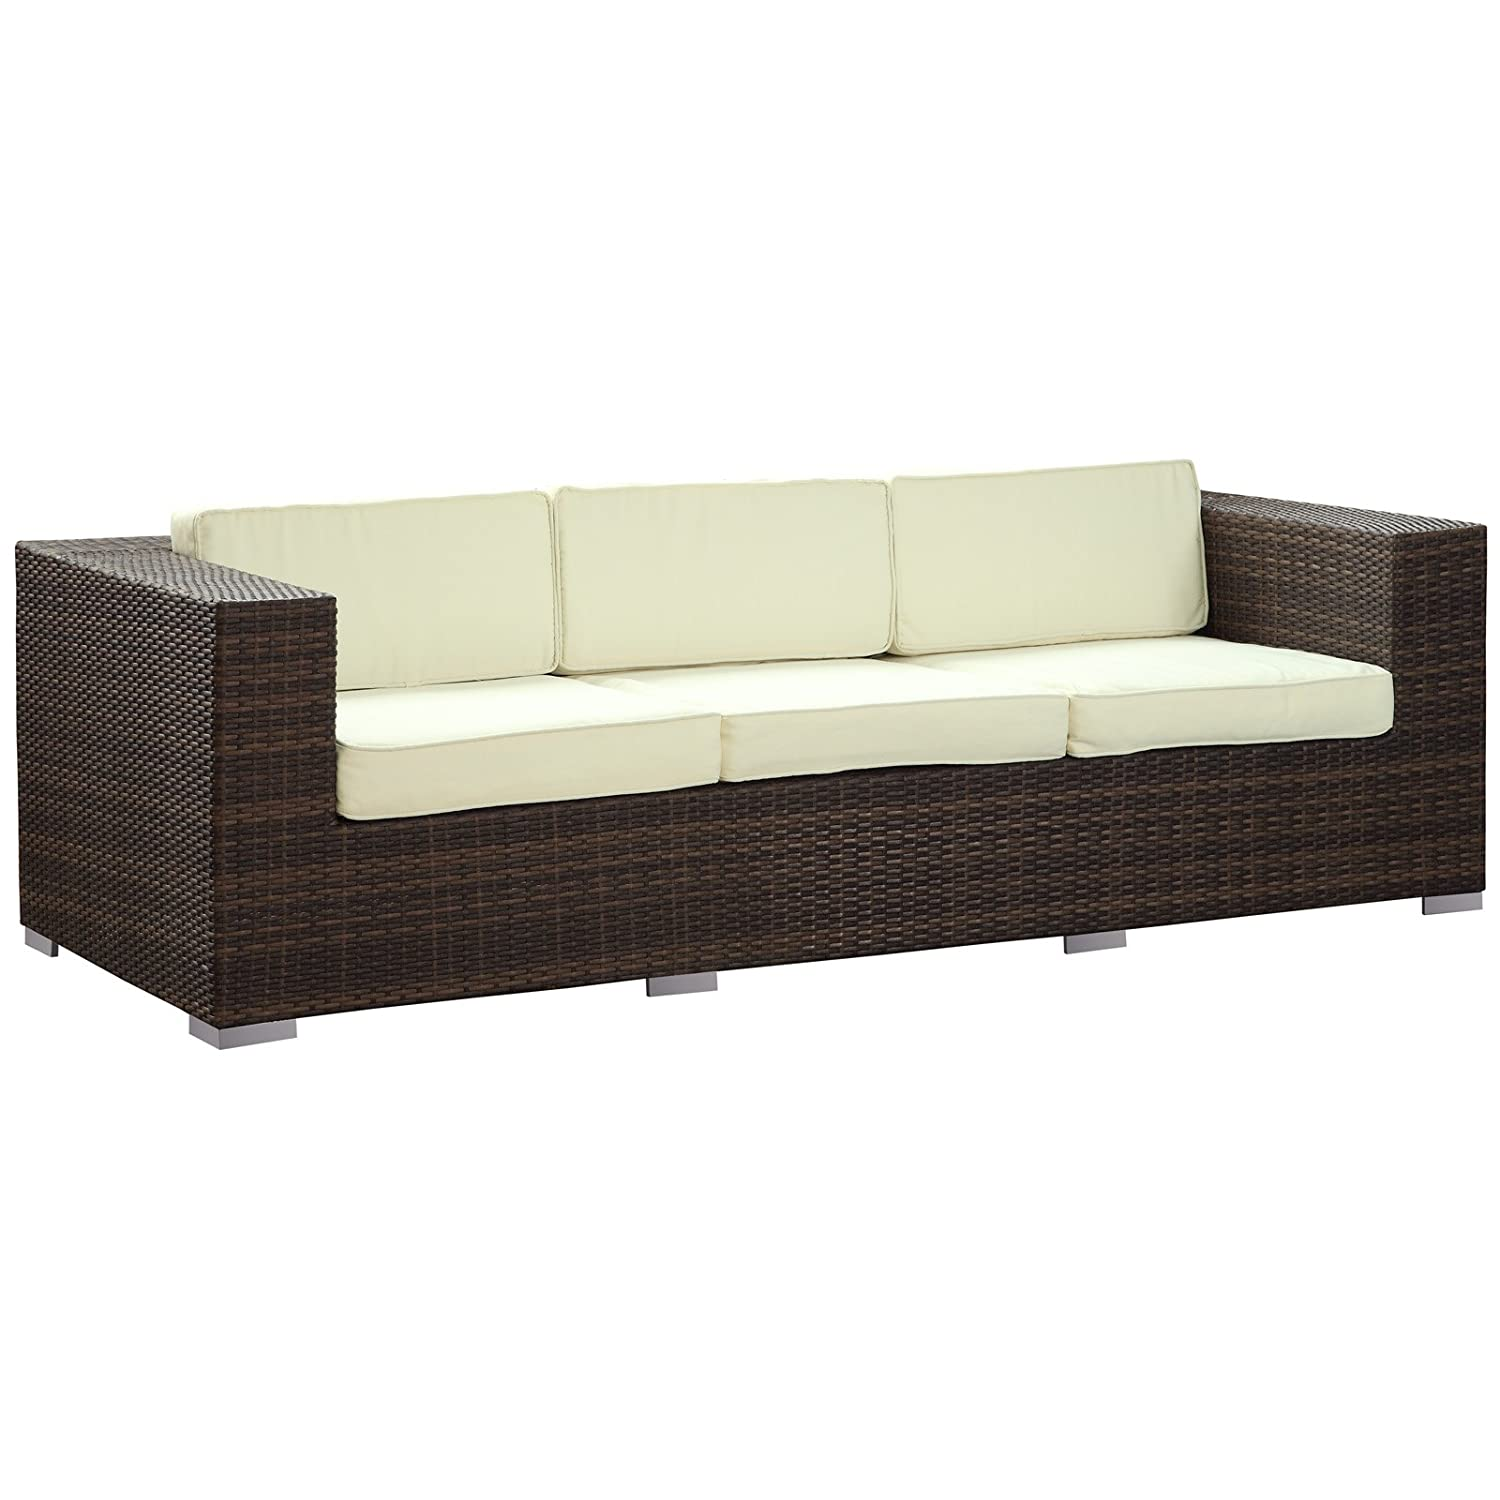 Rattan Couch Sofa Brown W White Pillows Outdoor Water Resistance Aluminum Frame Ebay